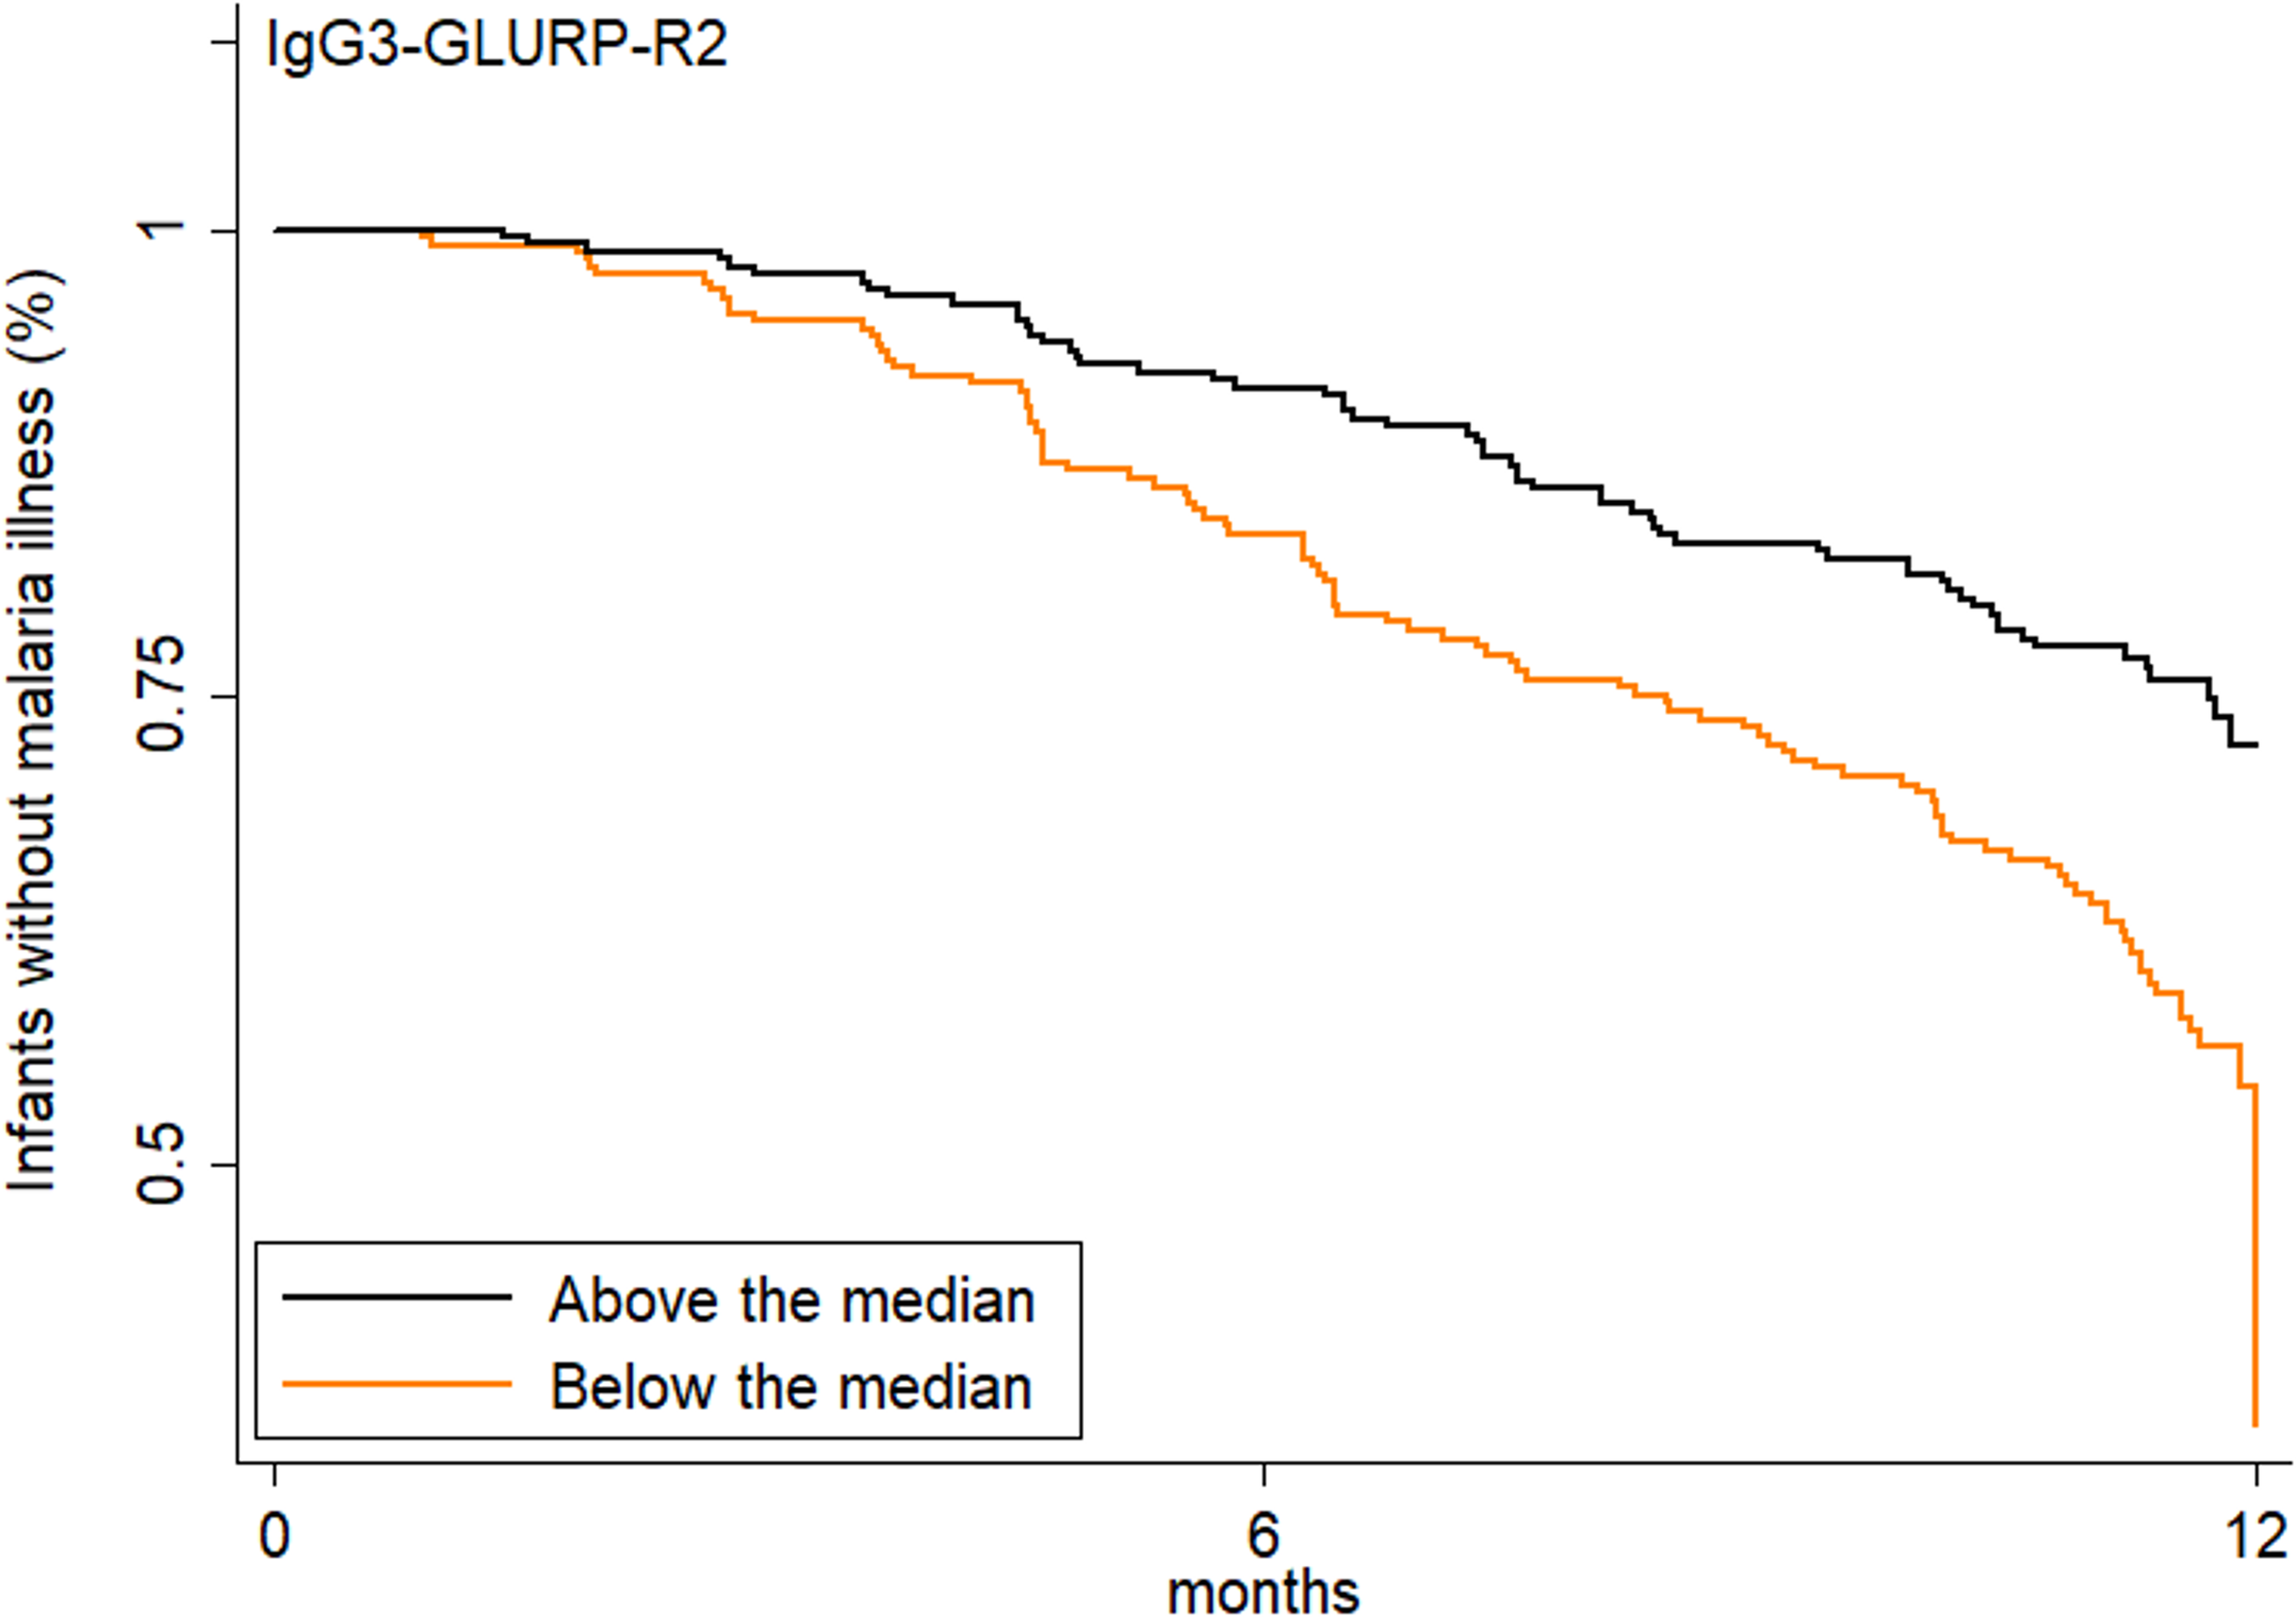 Increased transplacental transfer of GLURP-R2-specific IgG3 is associated with delayed time to first symptomatic malaria.